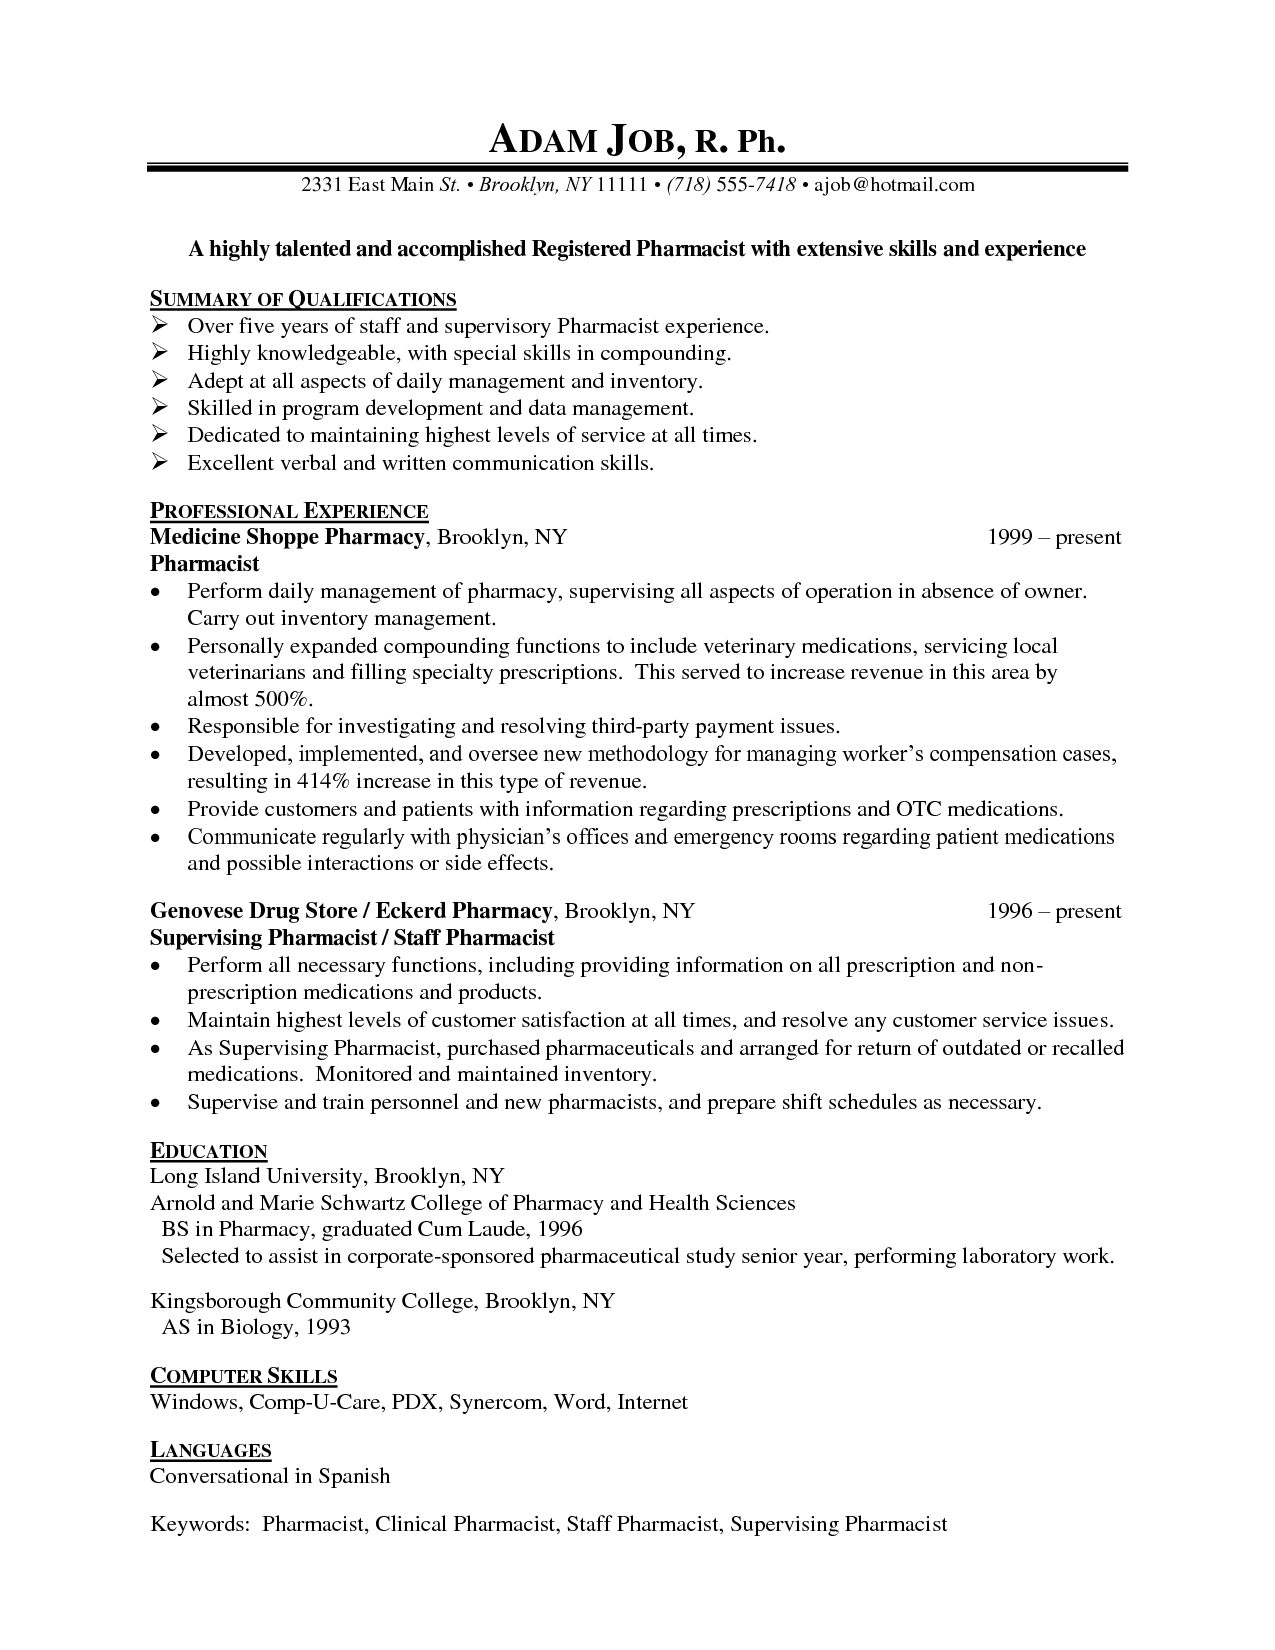 Resume Template Resume cover letter examples, Resume